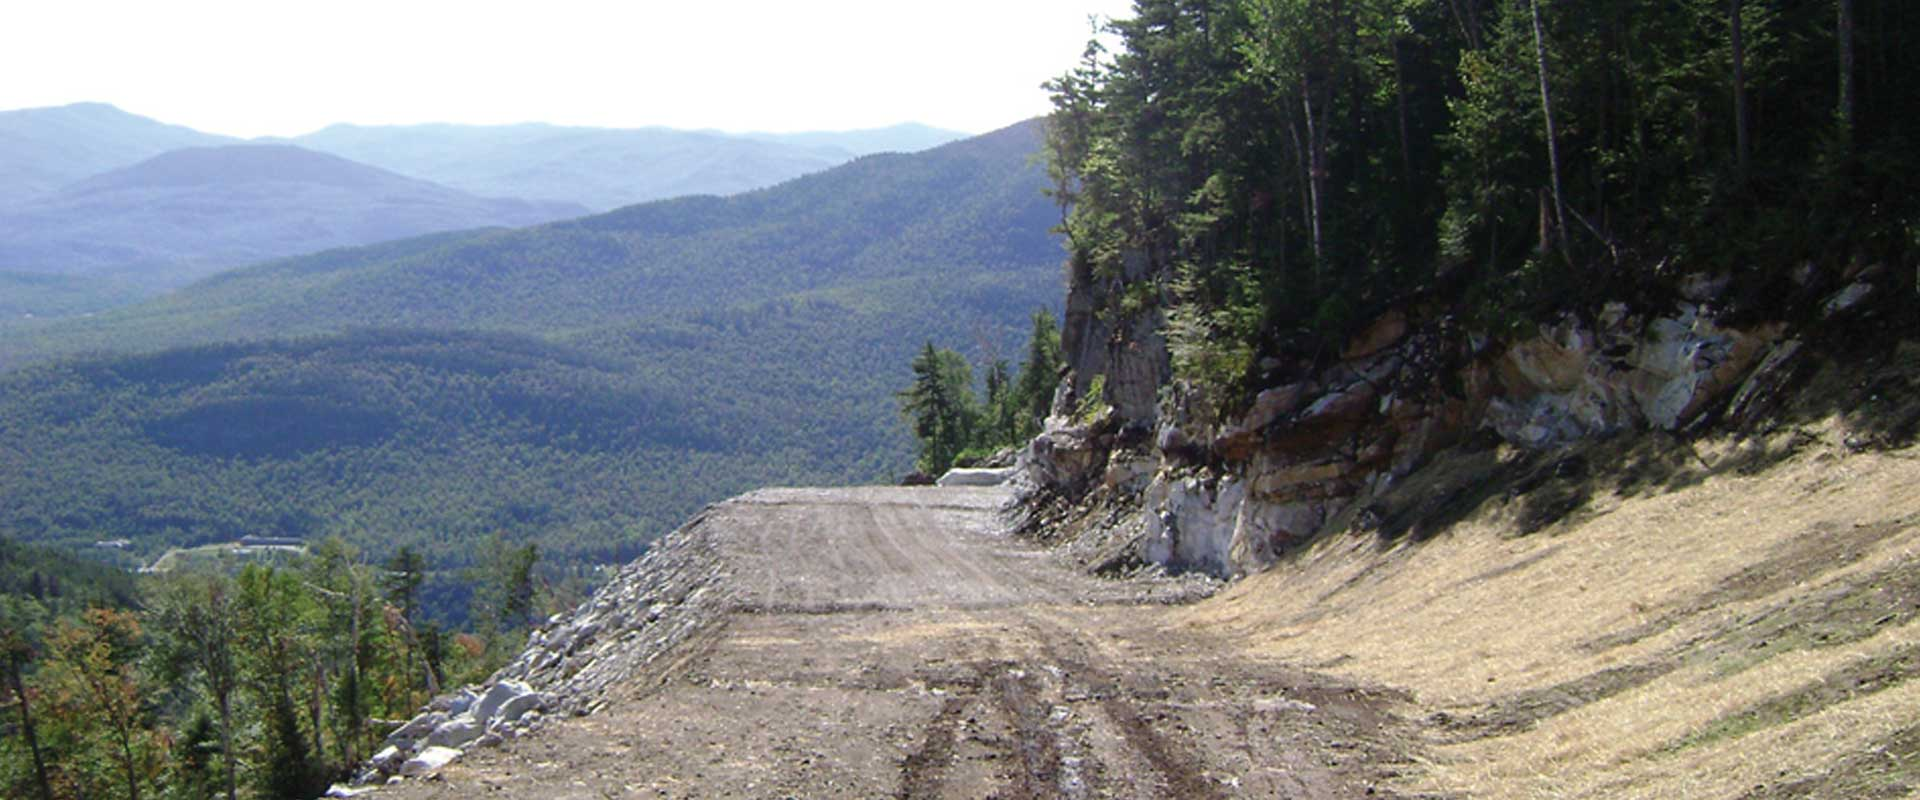 New Trail Construction - Whiteface Ski Resort